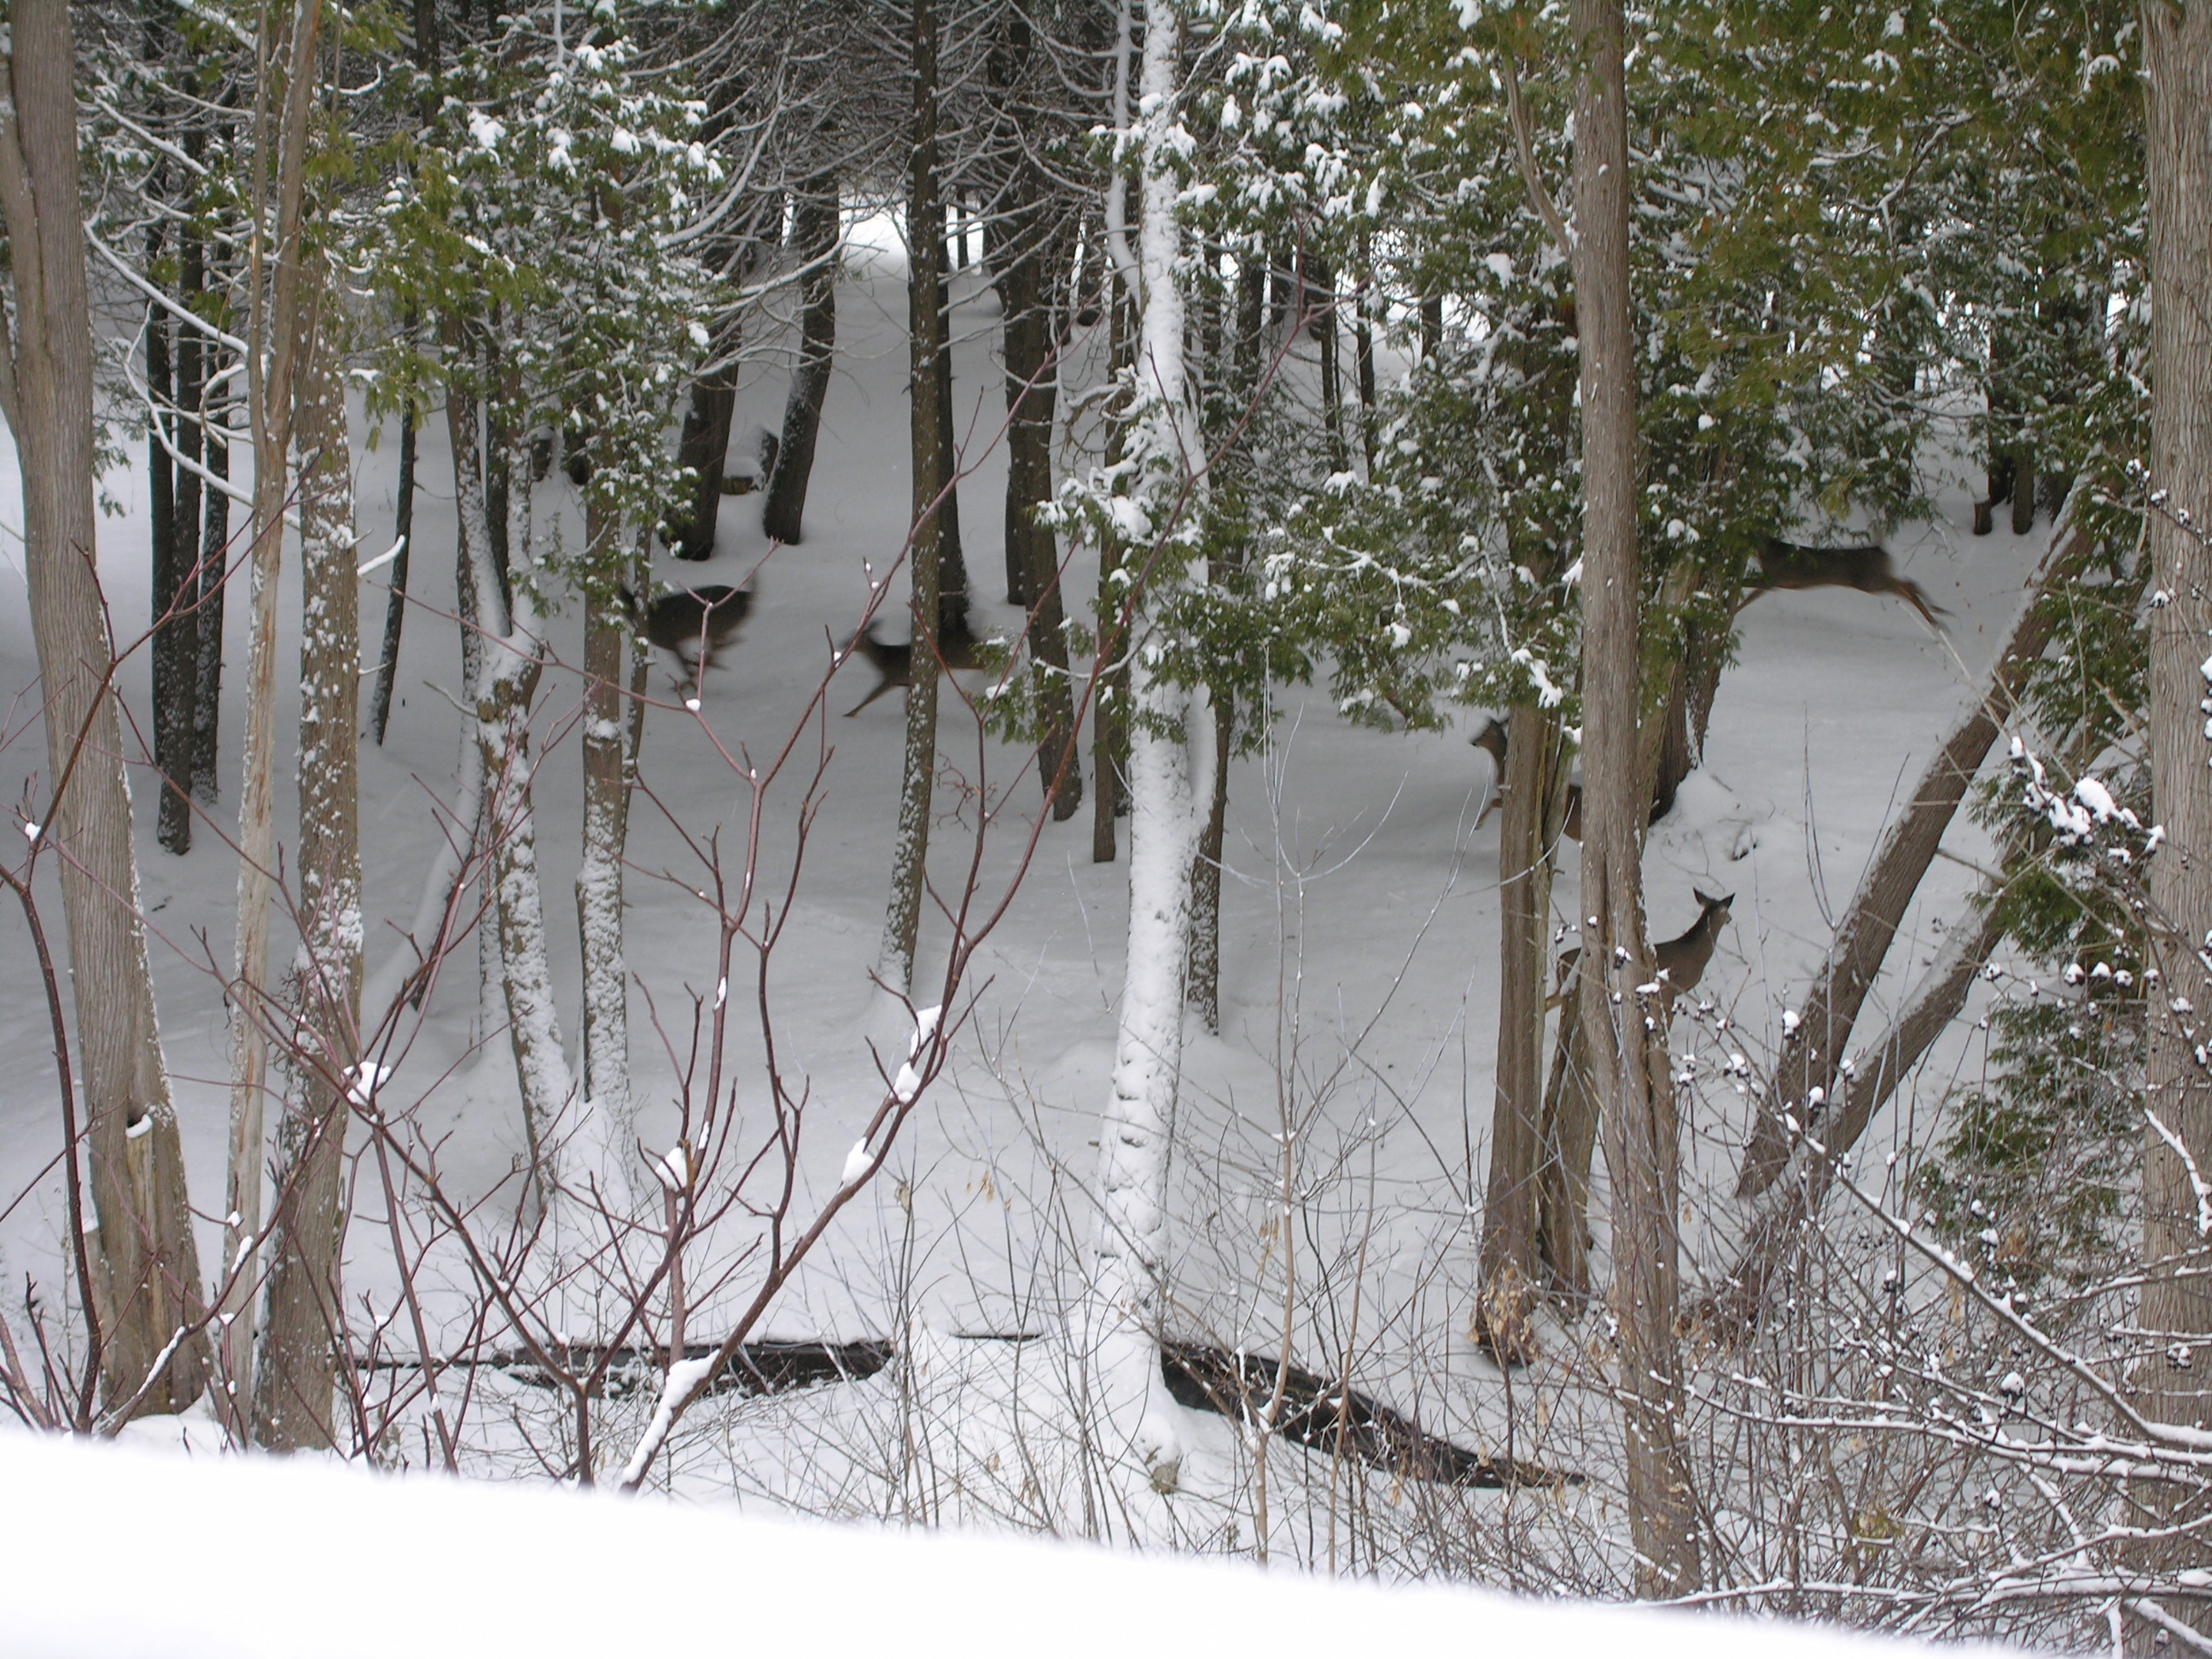 Ten Years Ago My Wife And I Spotted Deer In The Woods Below Our House In  Elora, For The First Time Ever. There Was Also A Lot Of Noisy Activity From  The ...